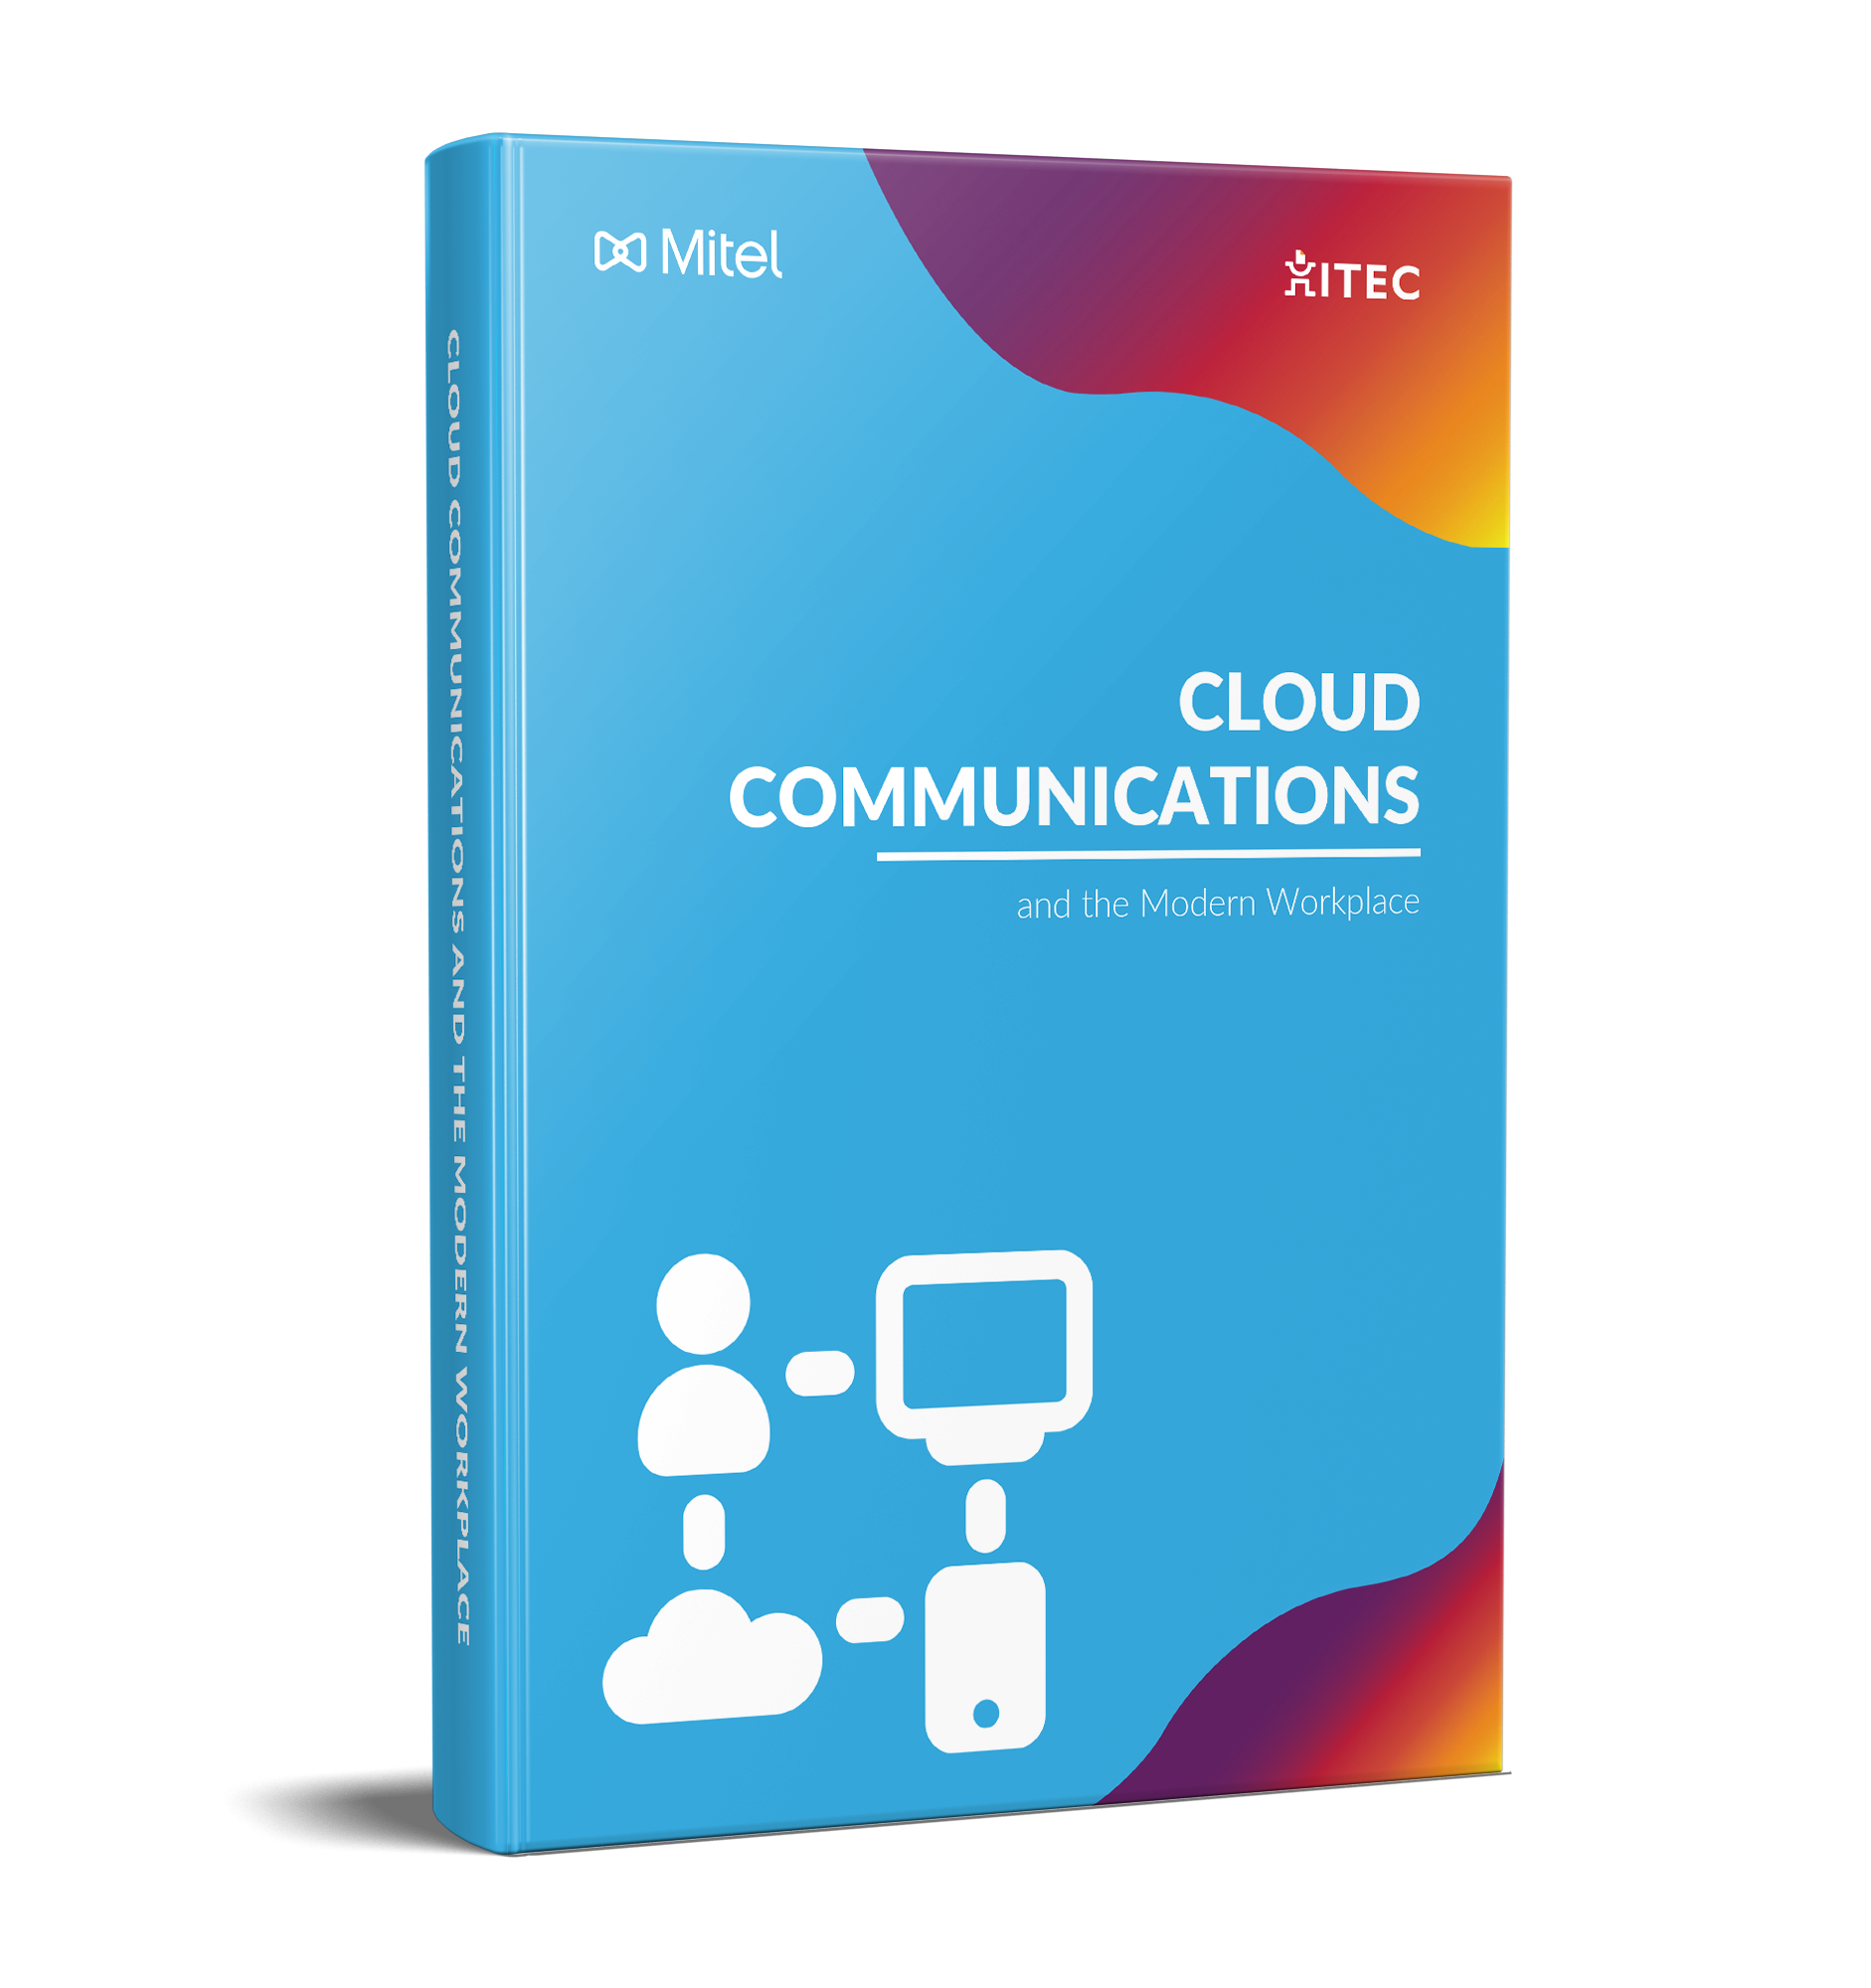 Mitel Ebook - Cloud Communications